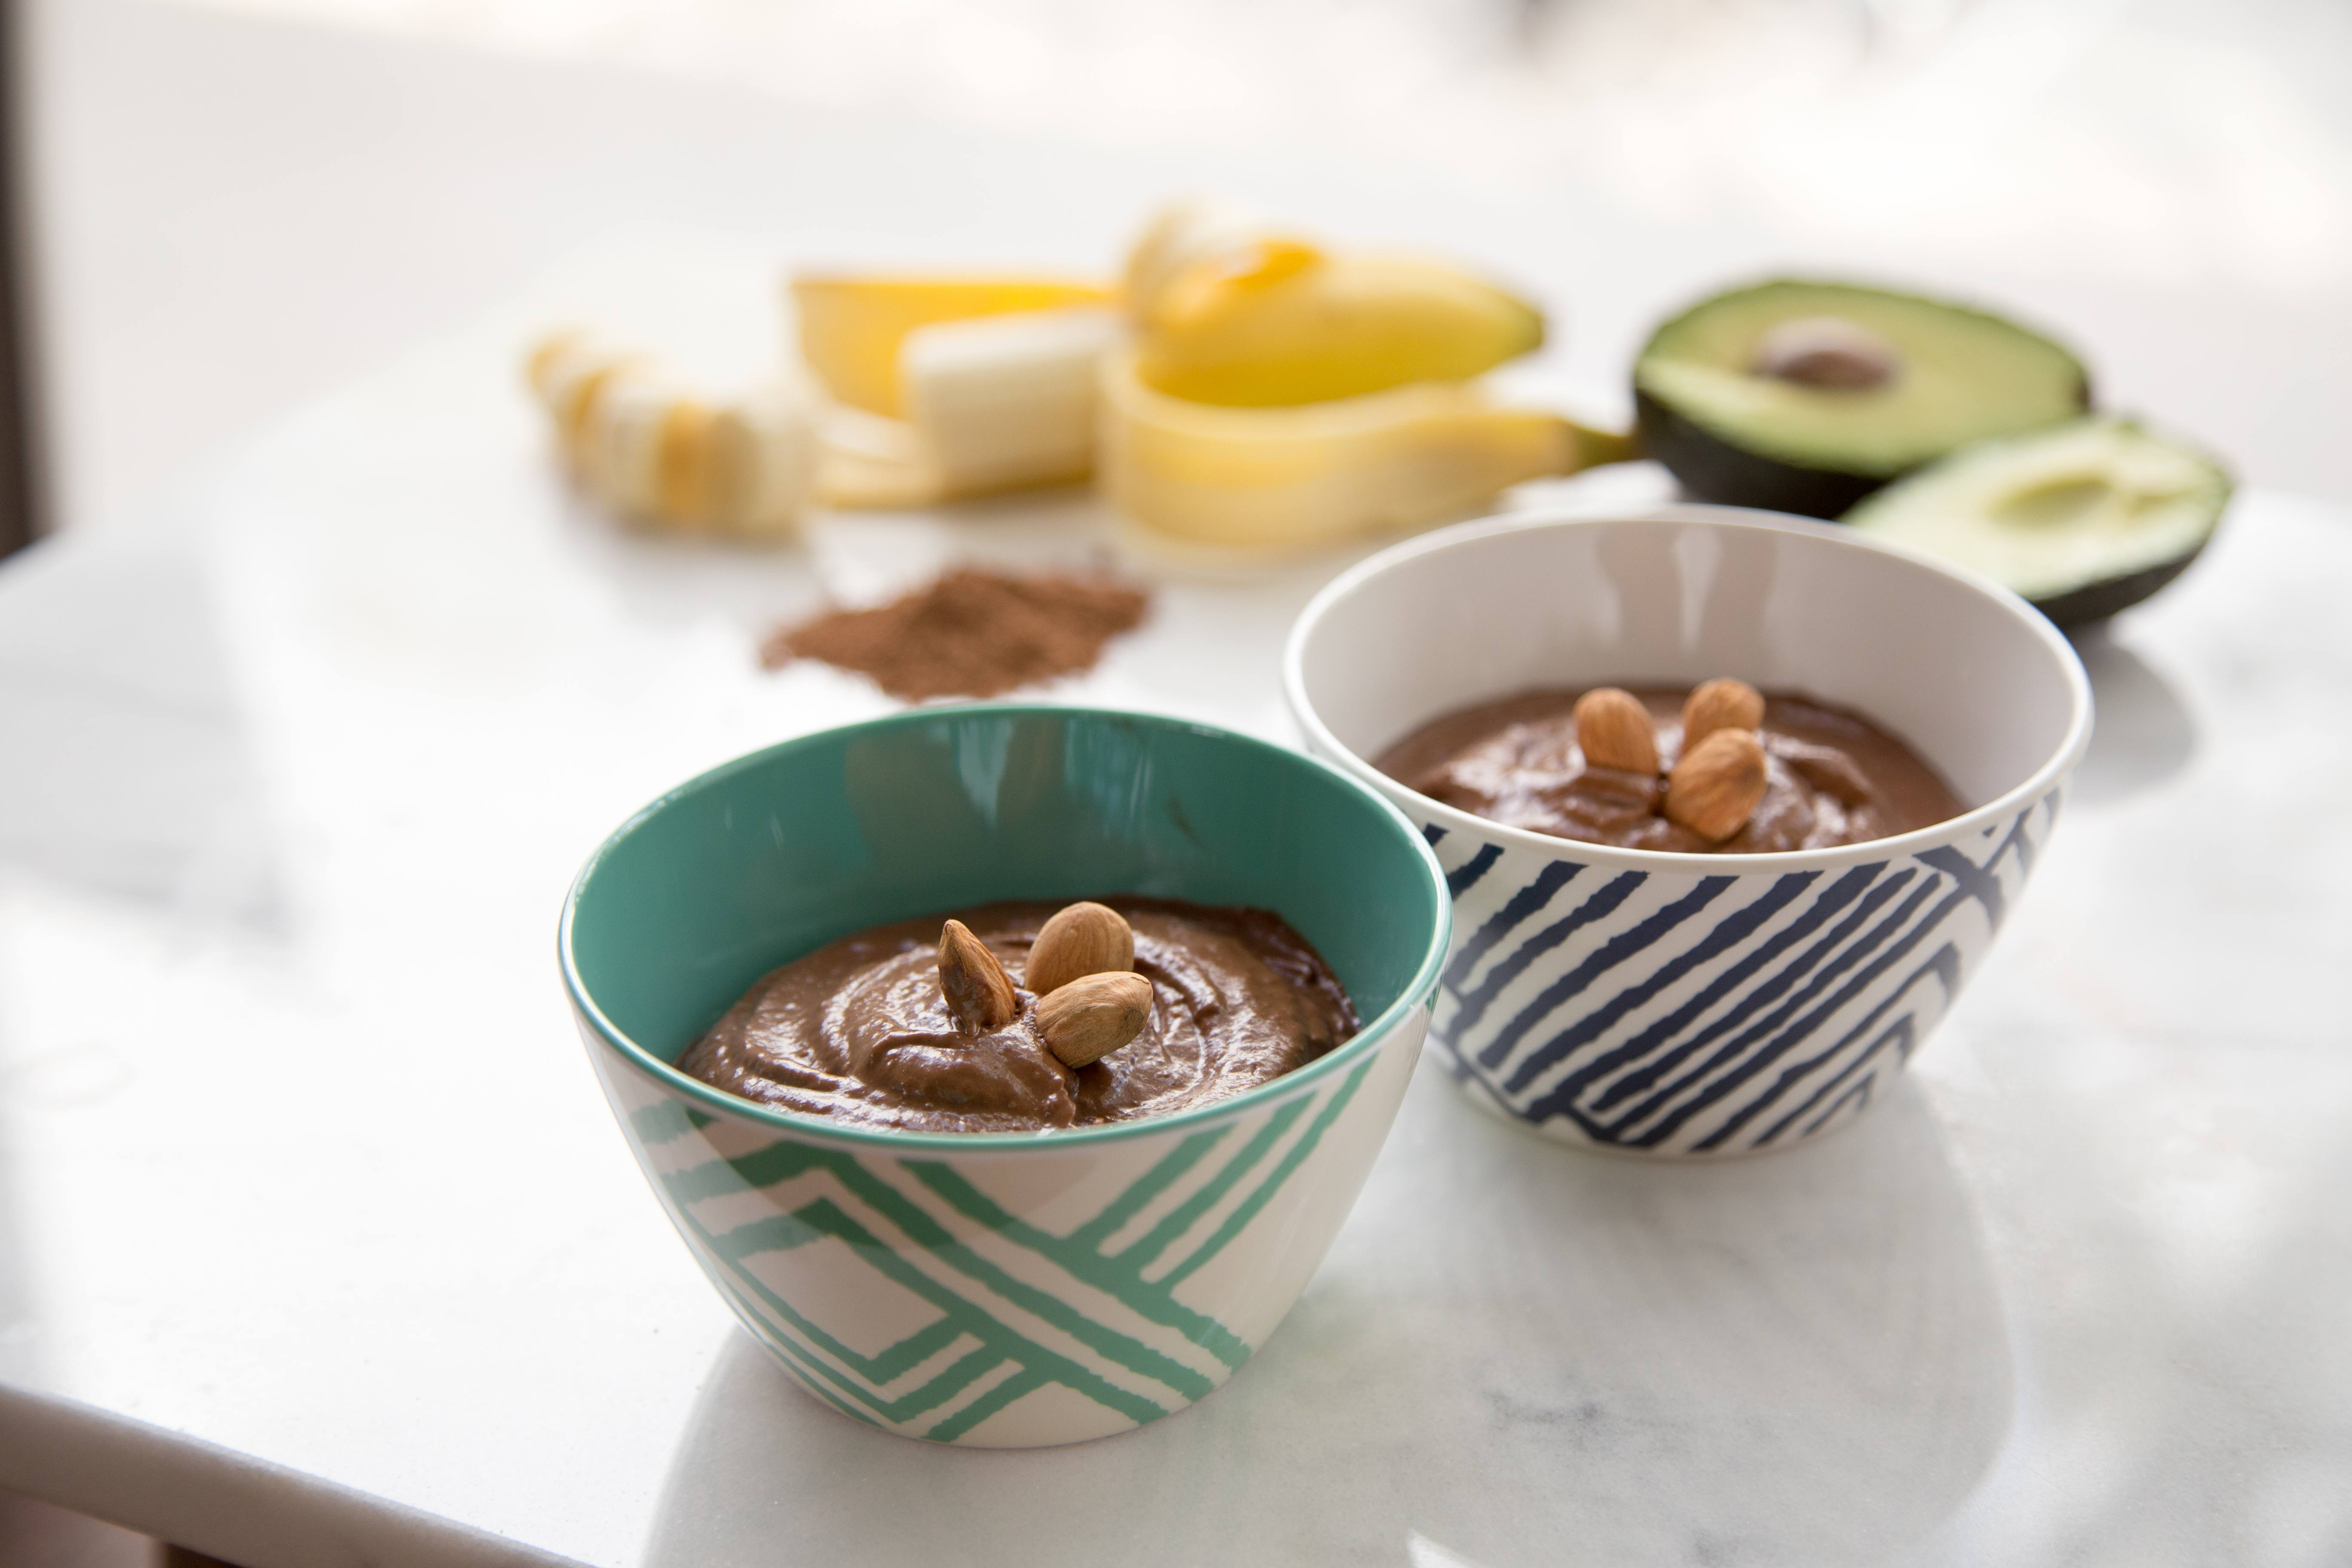 A bowl of vegan chocolate pudding. This dessert has no sugar and the ingredients used can be beneficial to your health.